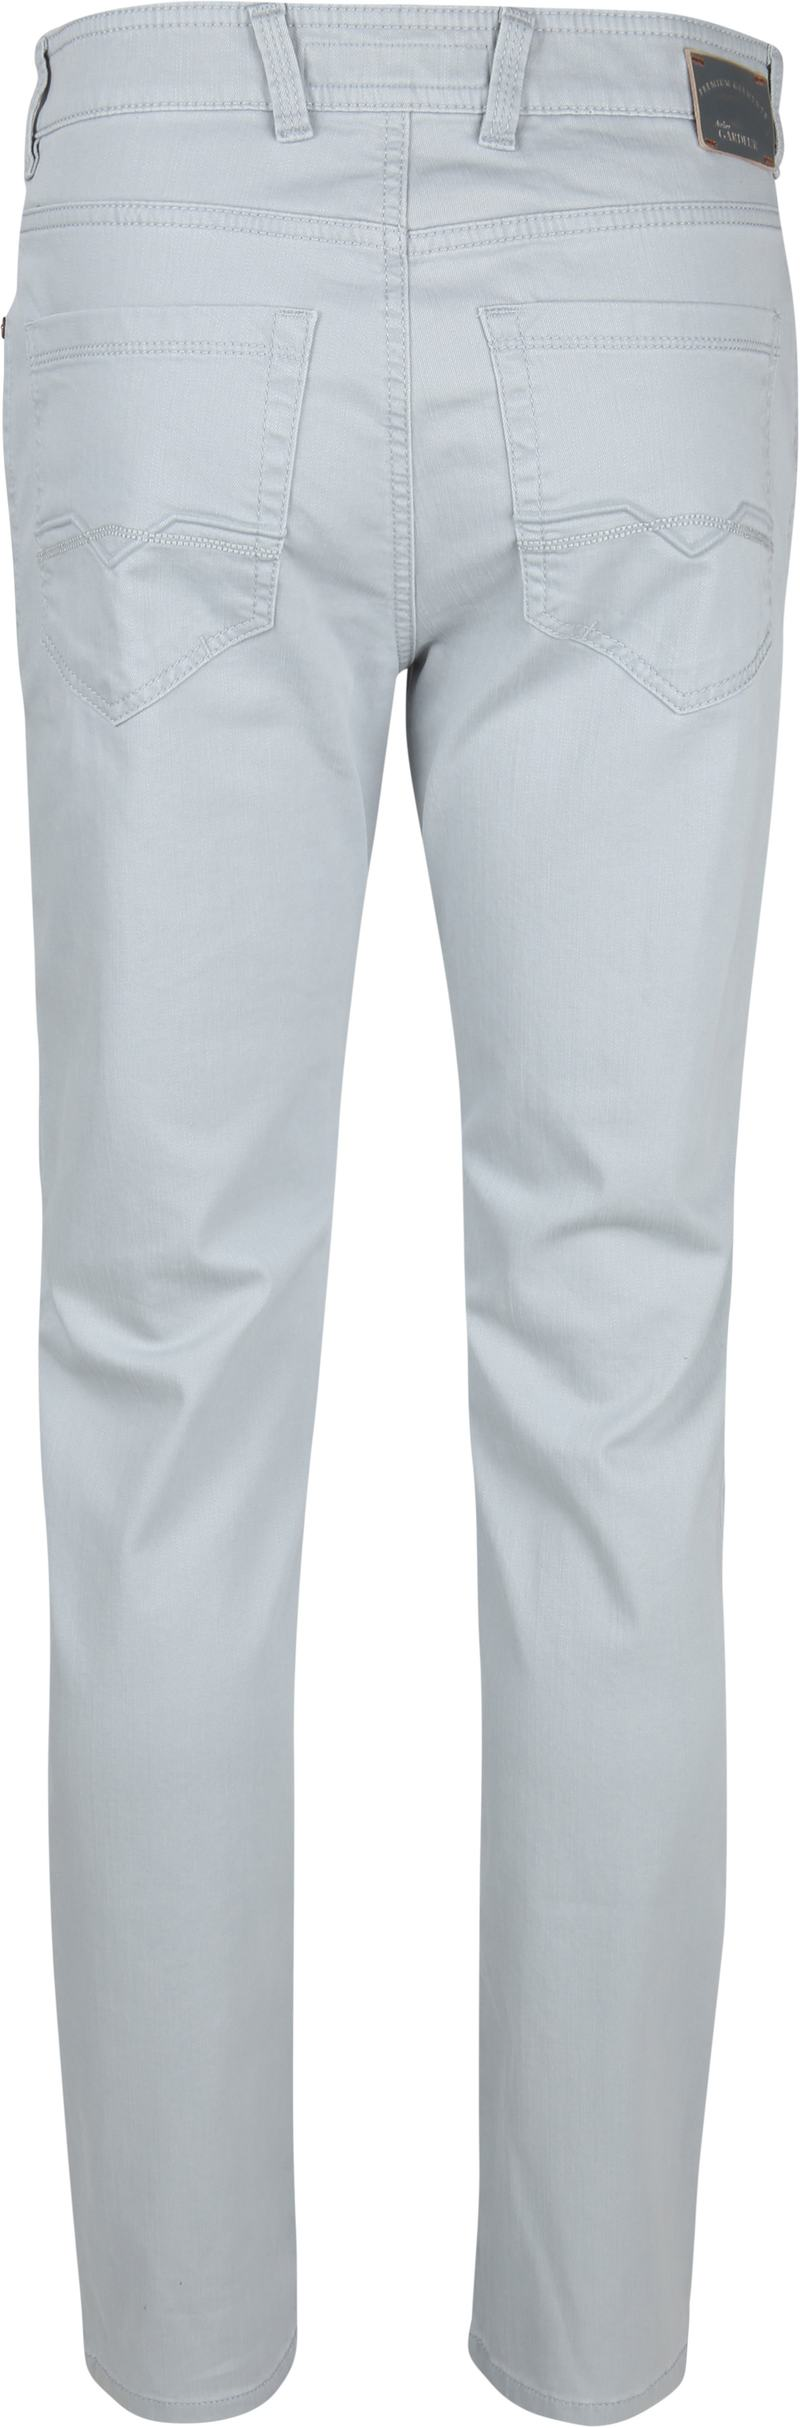 Gardeur Batu Pants Light Grey photo 3